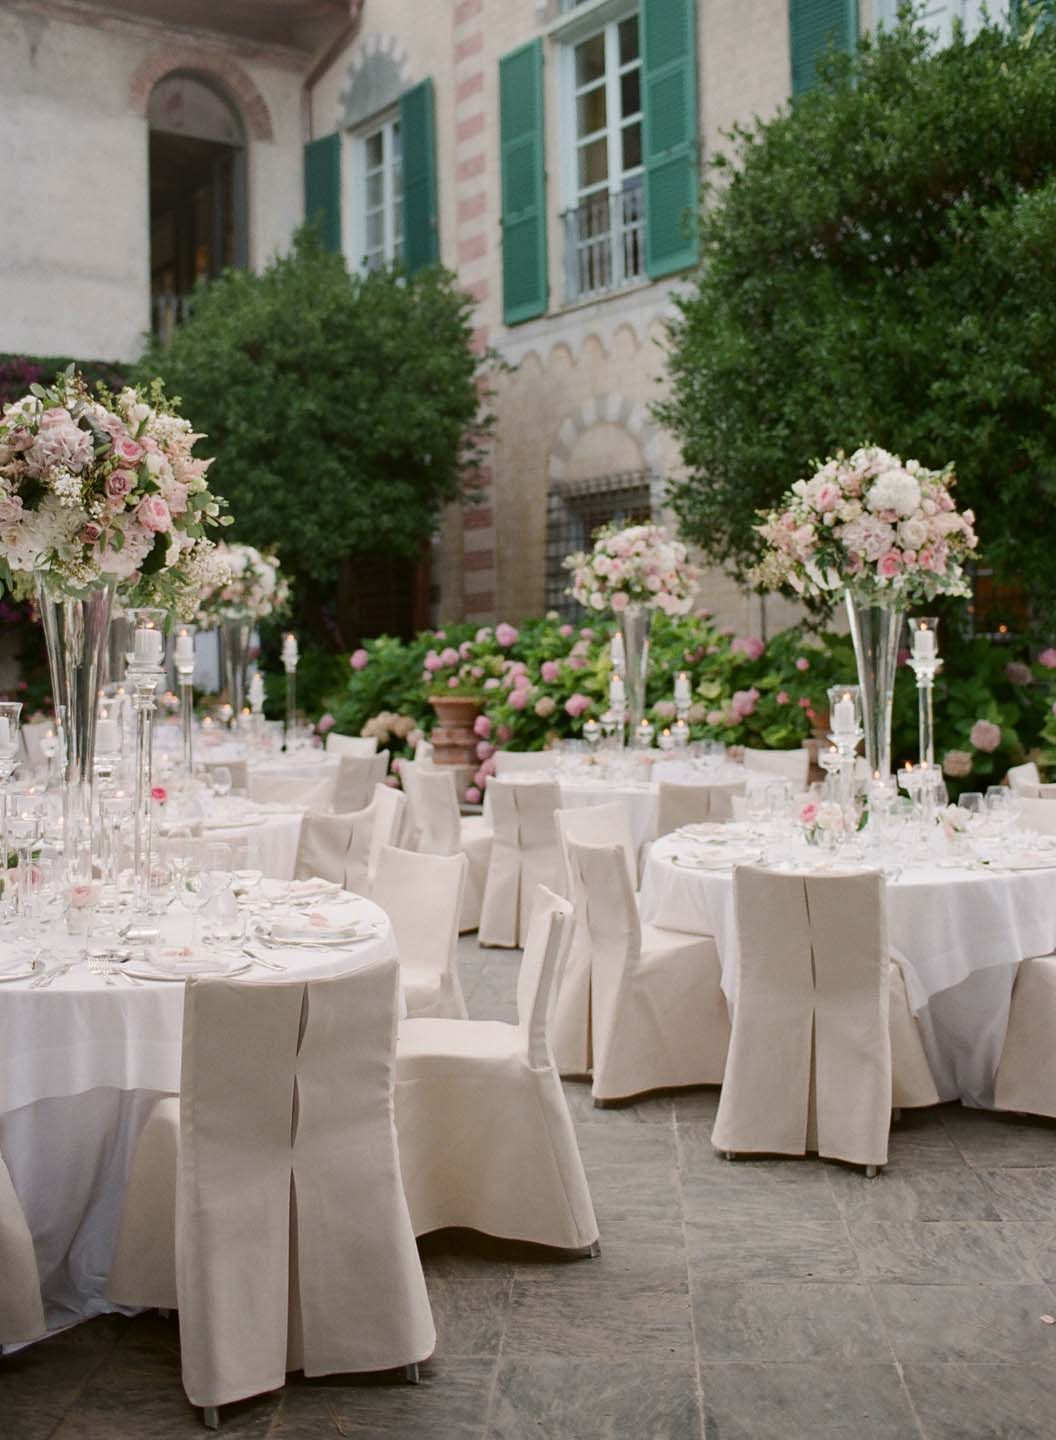 flower decor in pink and white